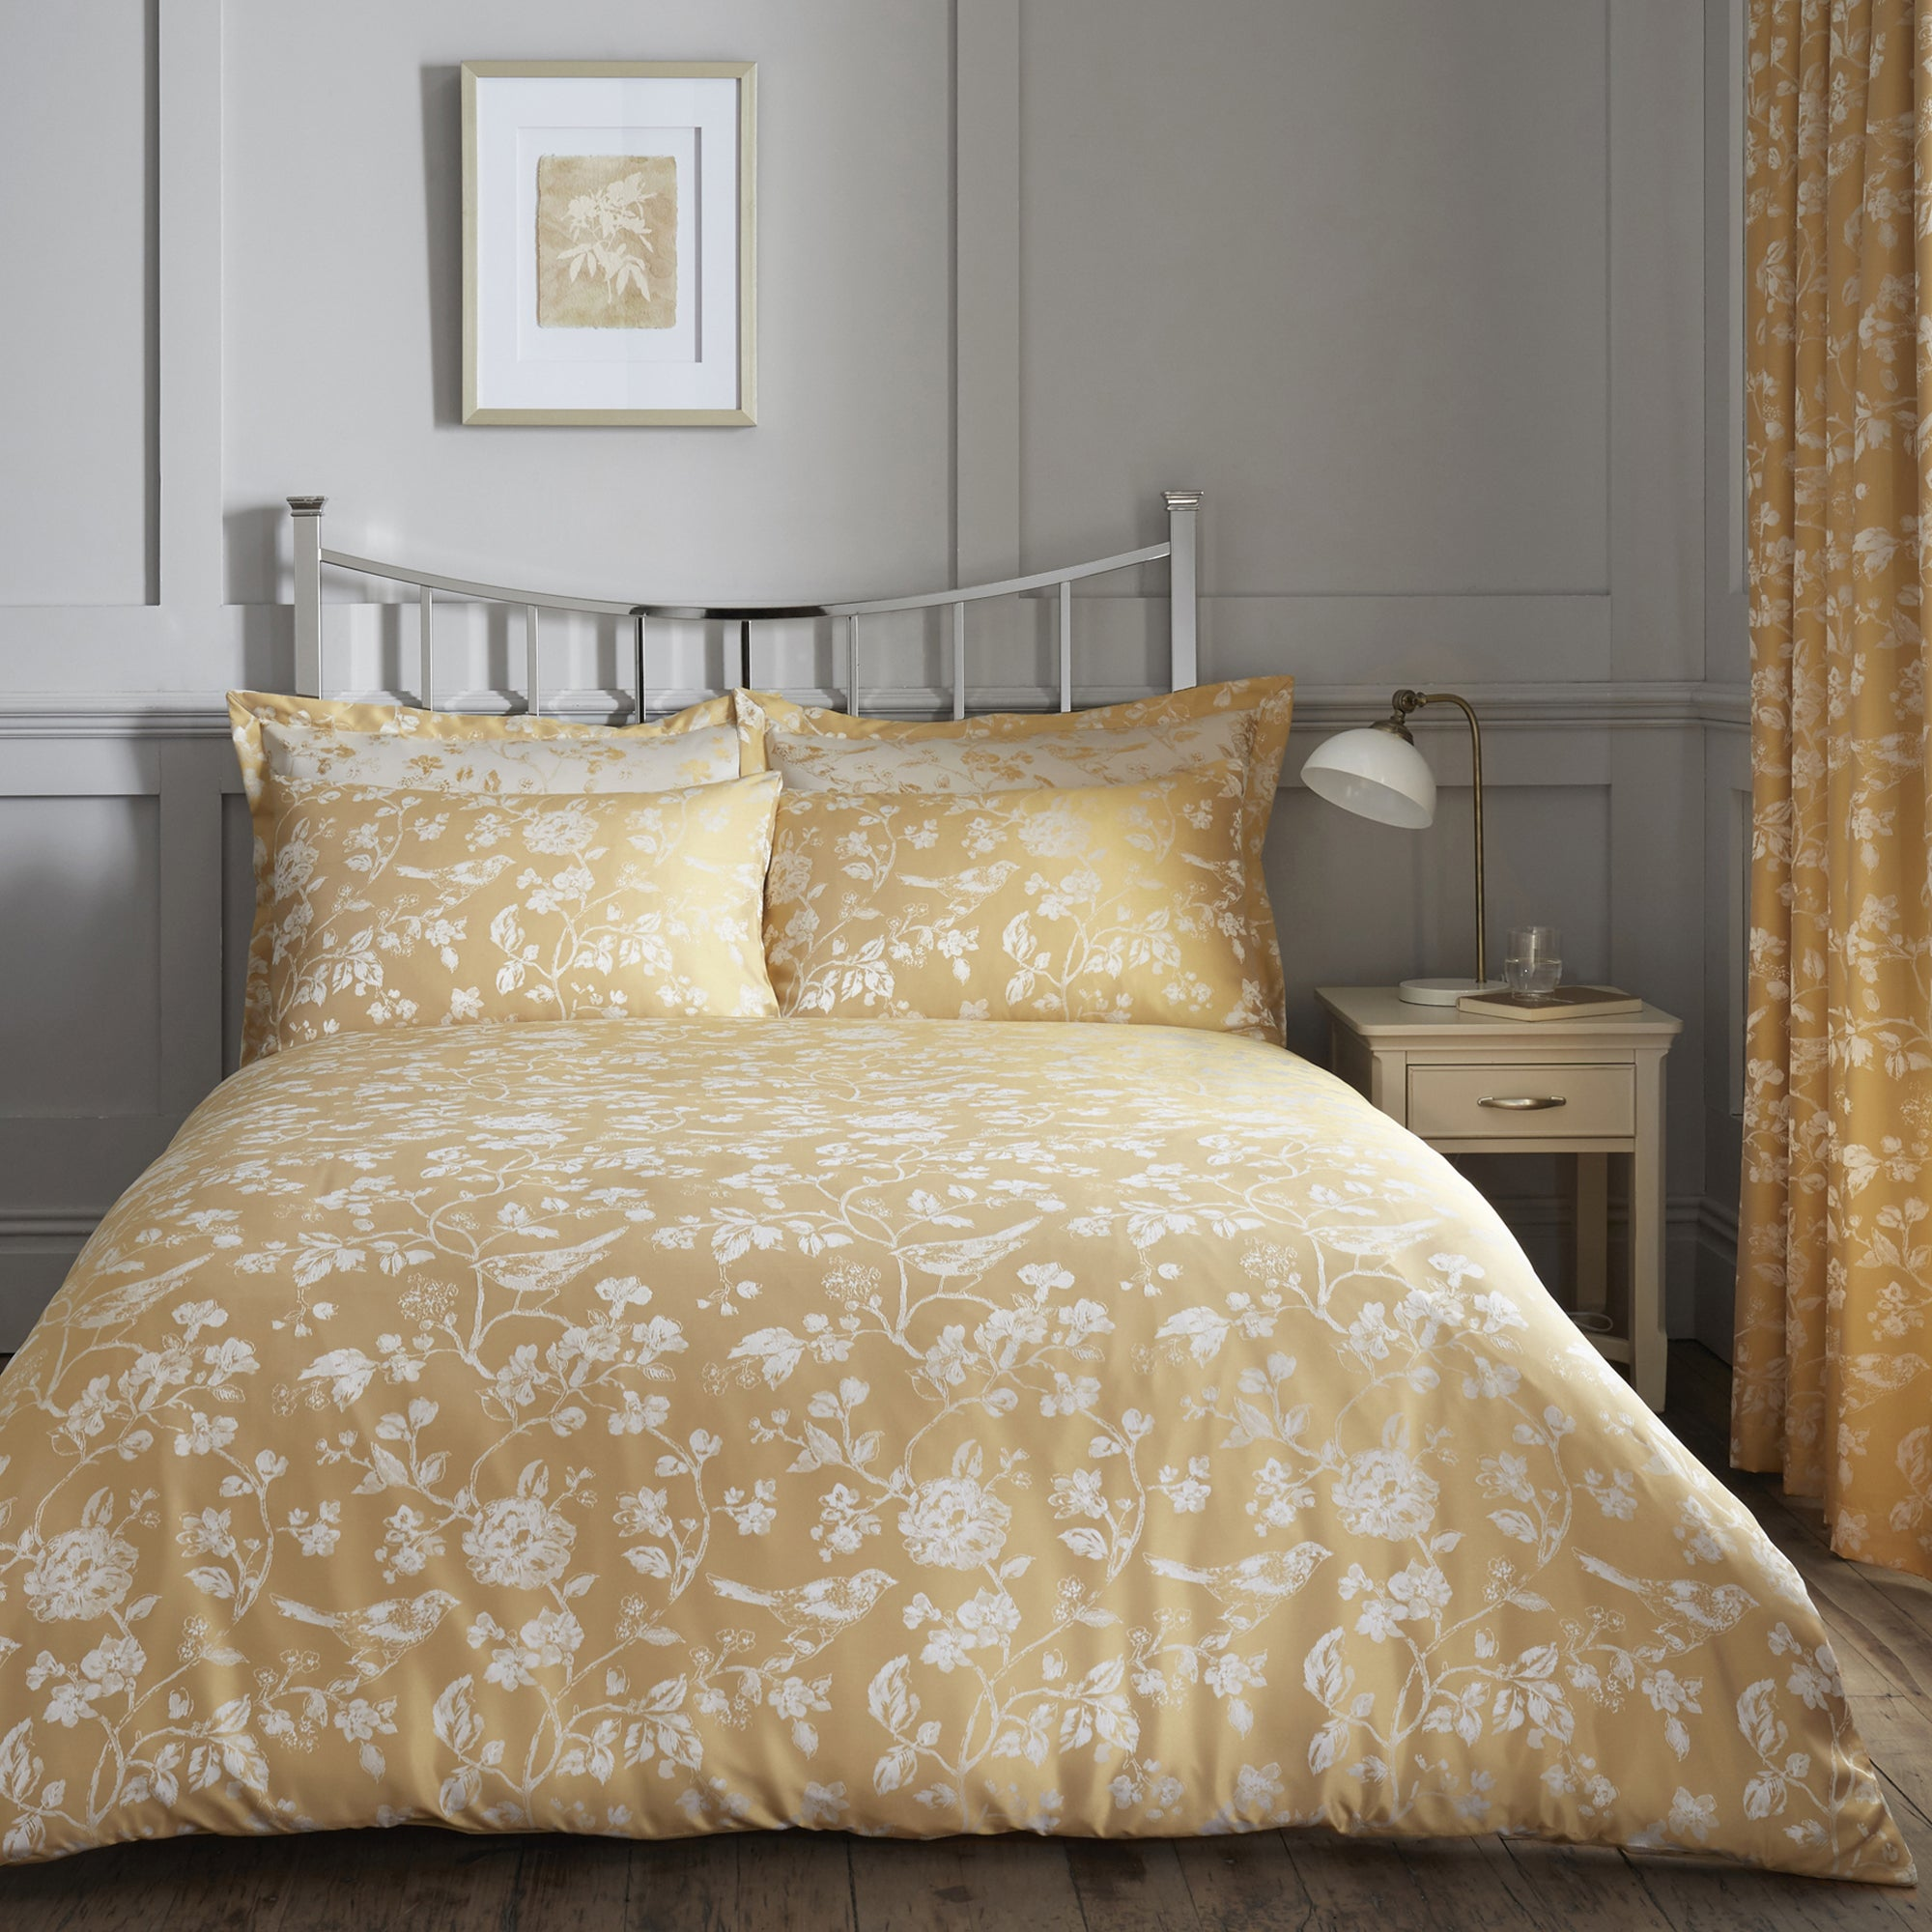 Photo of Marianne gold jacquard duvet cover and pillowcase set gold